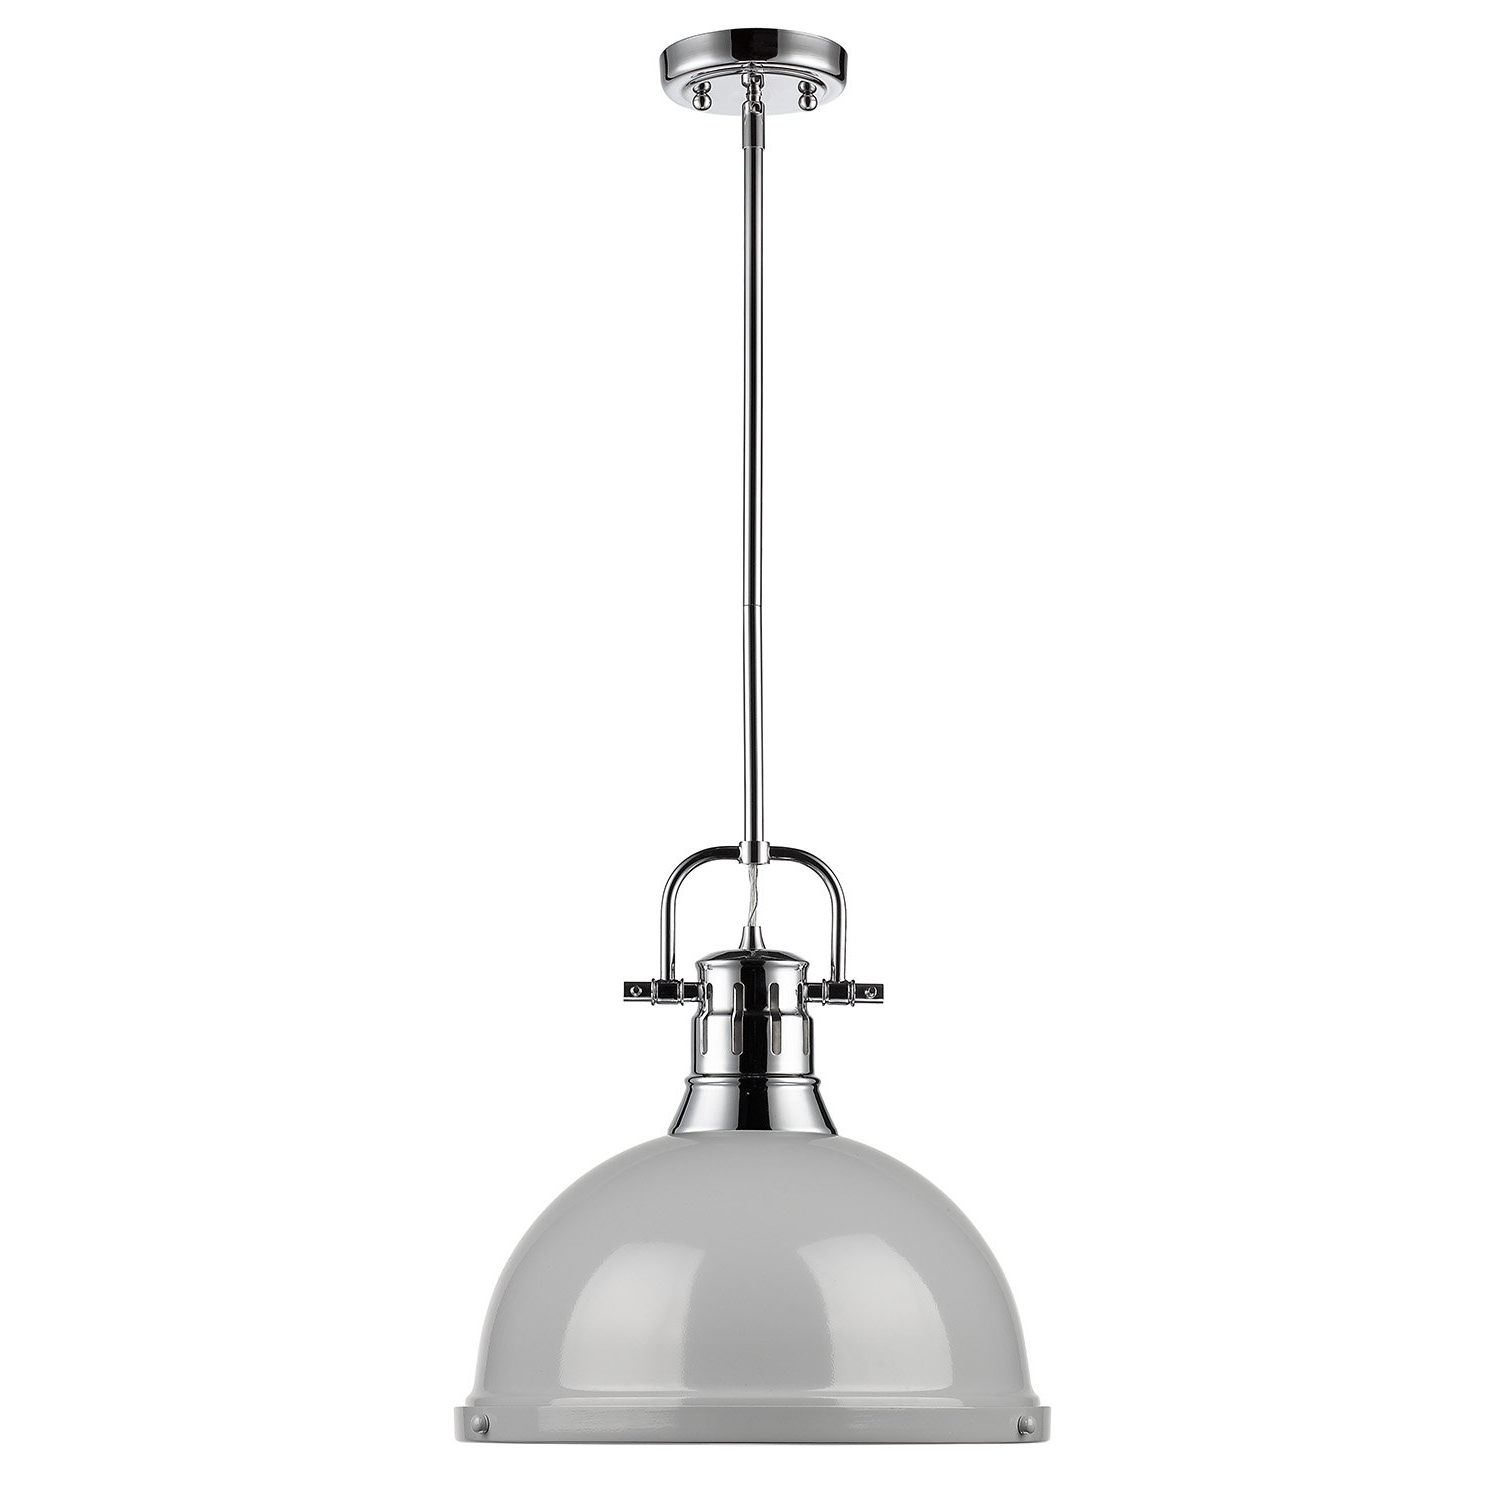 1 Light Single Dome Pendants For Most Current Bodalla 1 Light Single Dome Pendant (View 22 of 25)